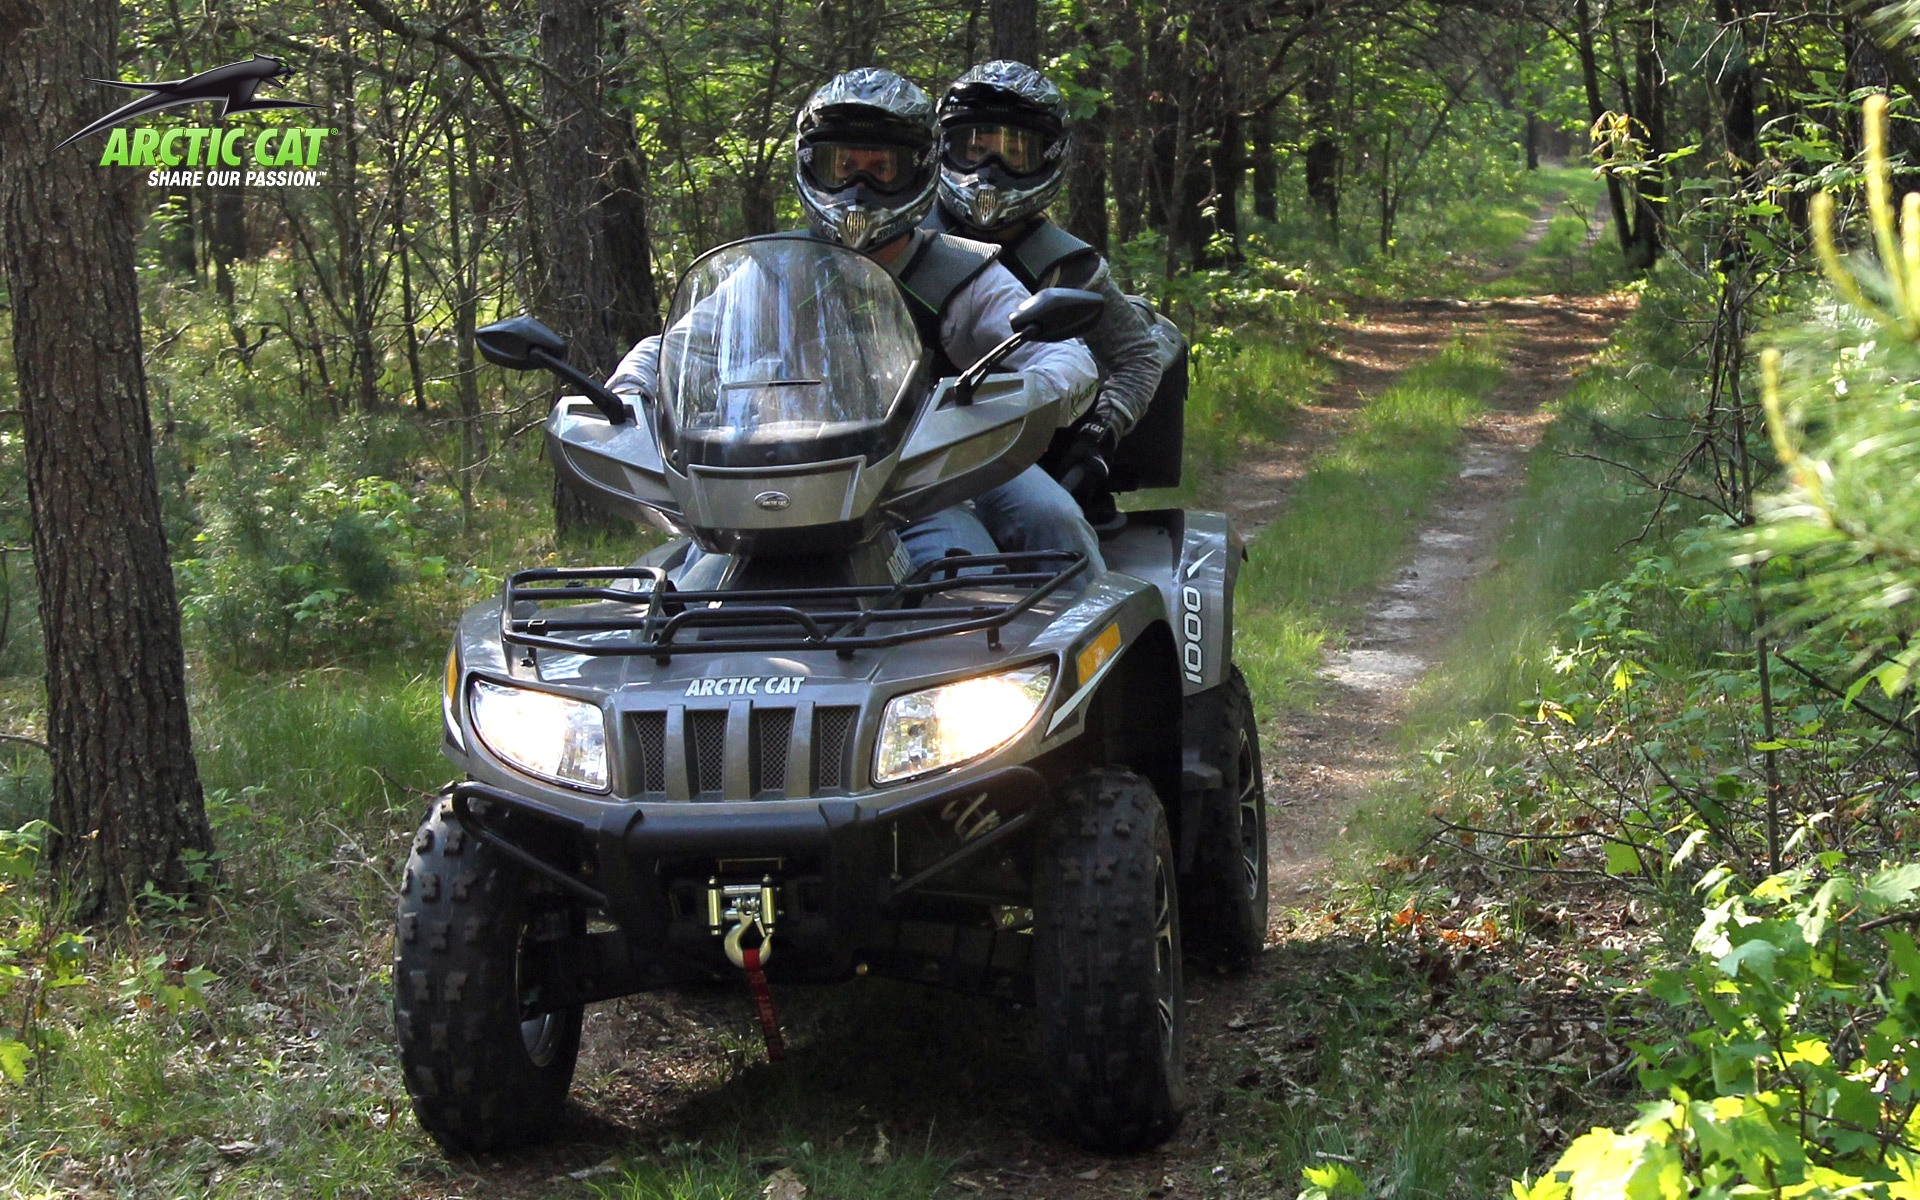 2013 Arctic Cat Trv 1000 Limited The Two Up Limo Atv Autoevolution